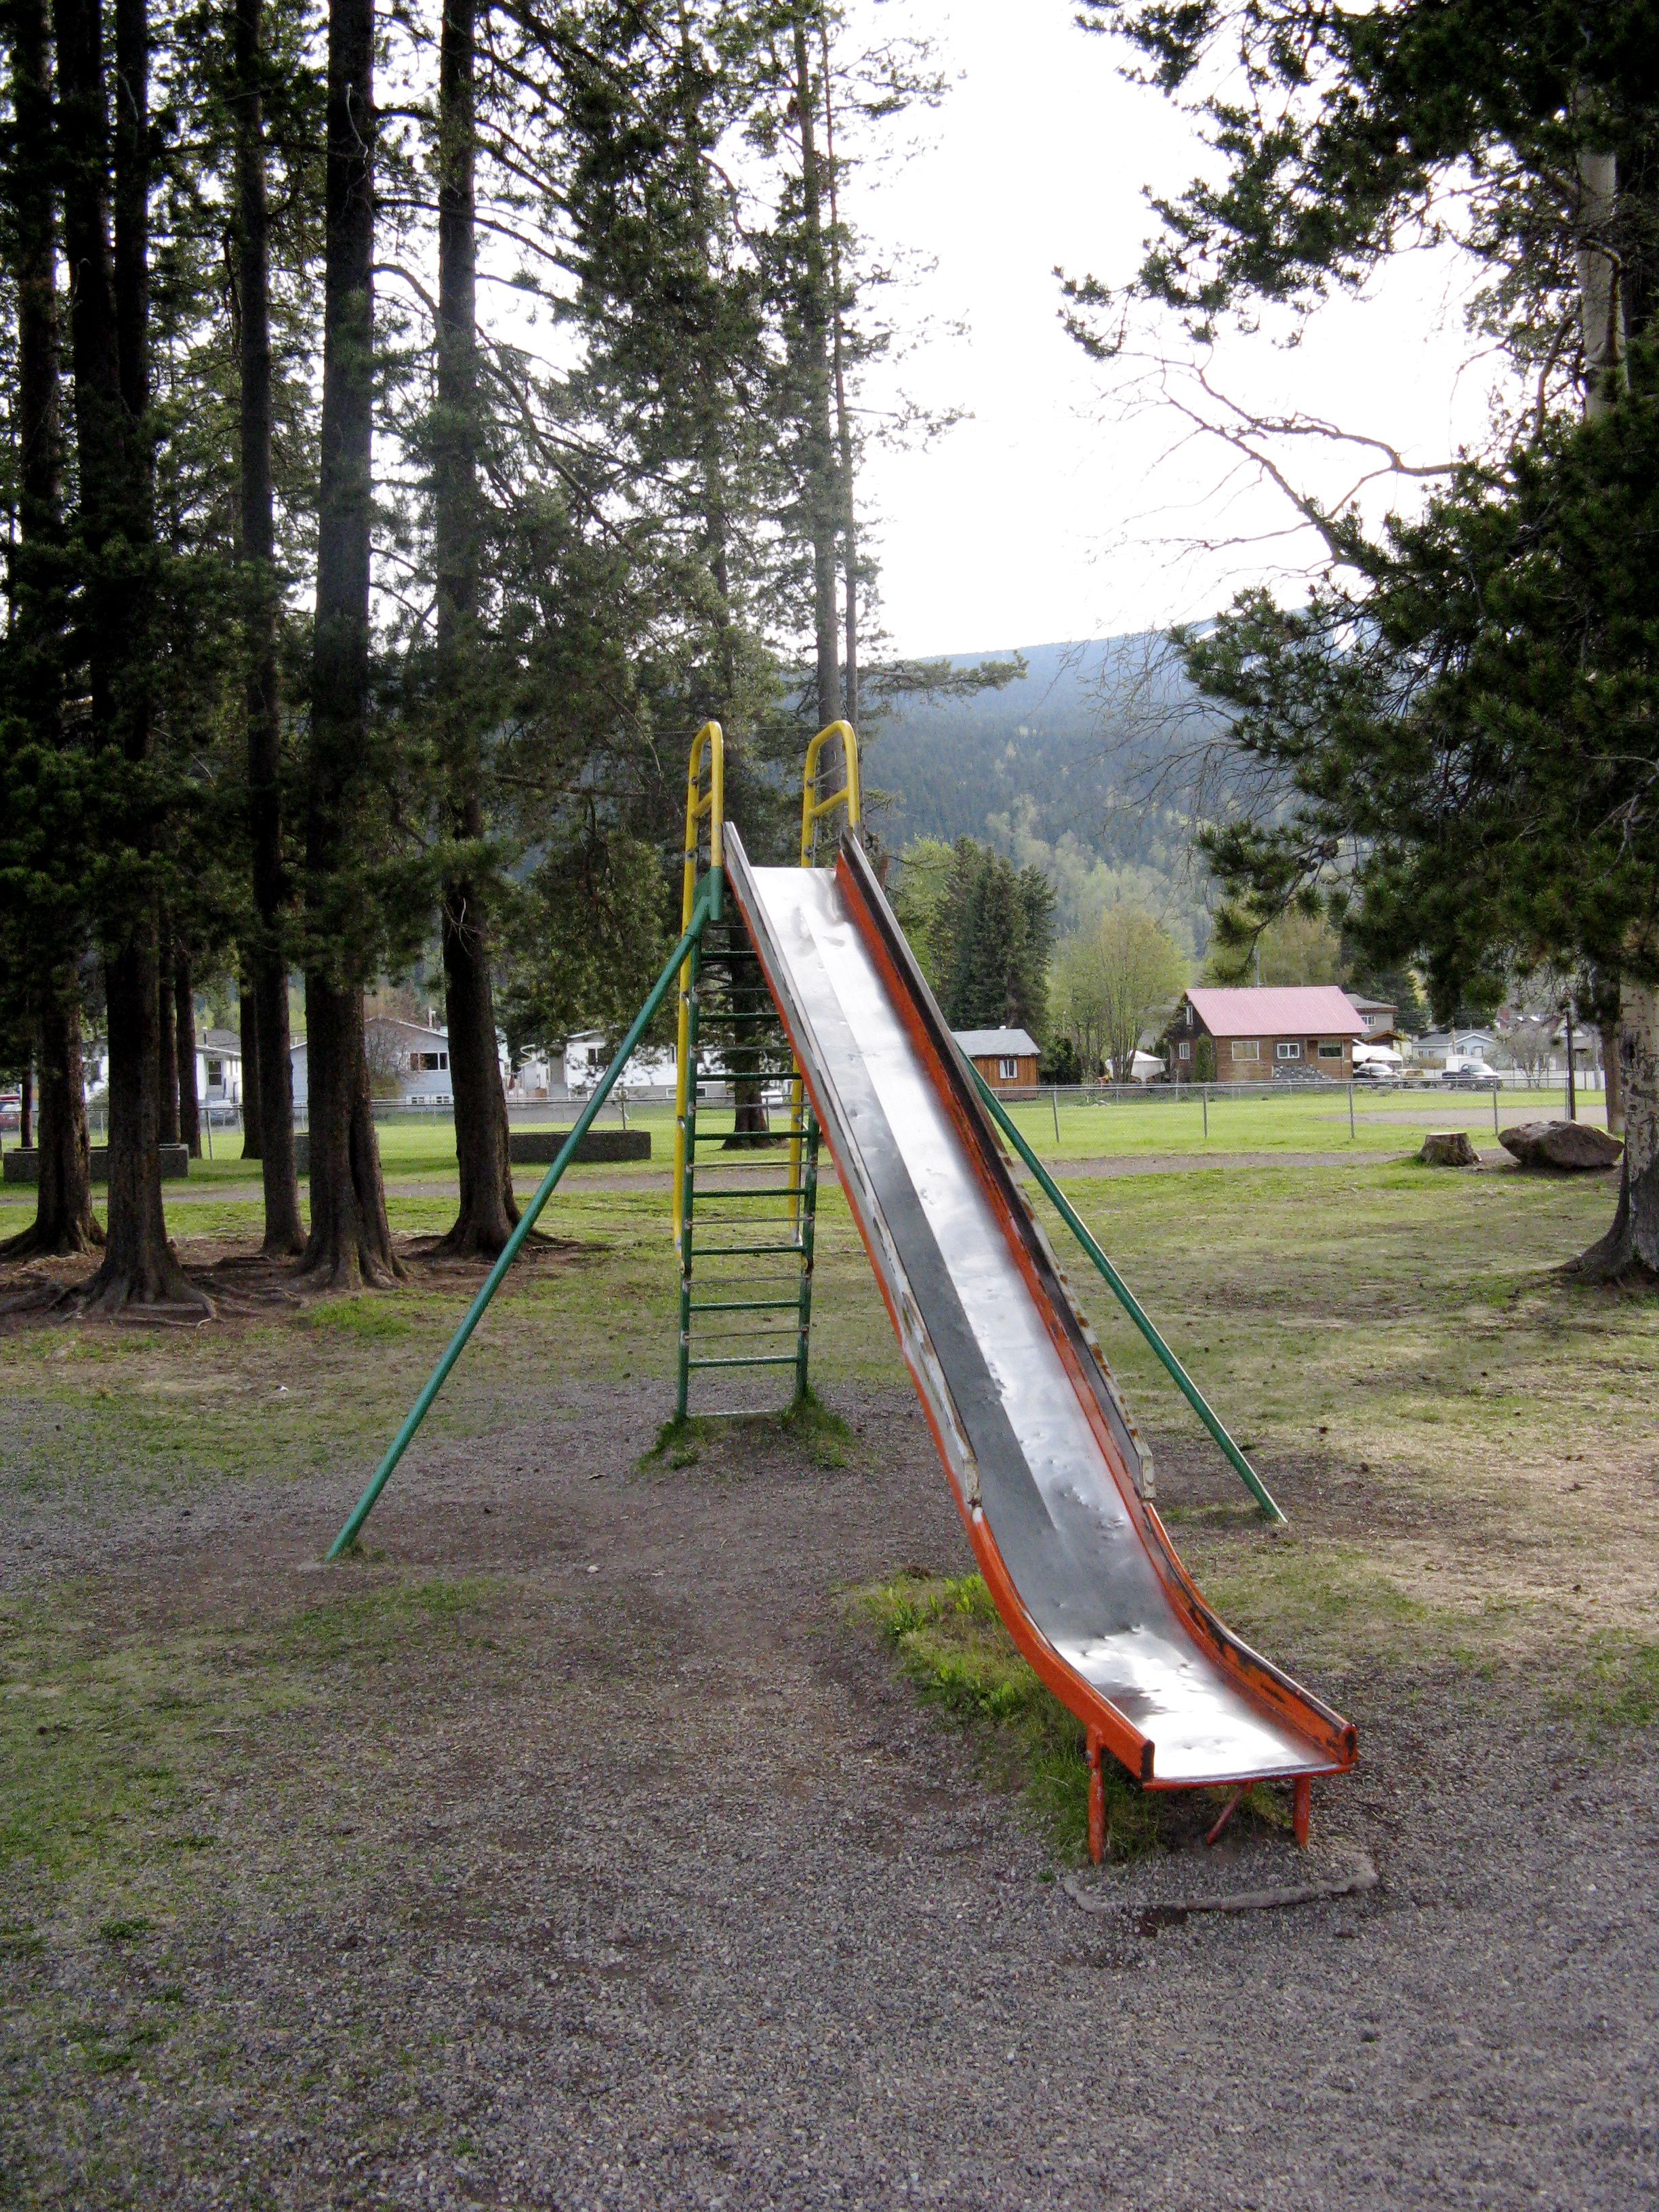 Pin On Playground Equpiment That Wasn T Too Dangerous For Us But Is For Our Kids